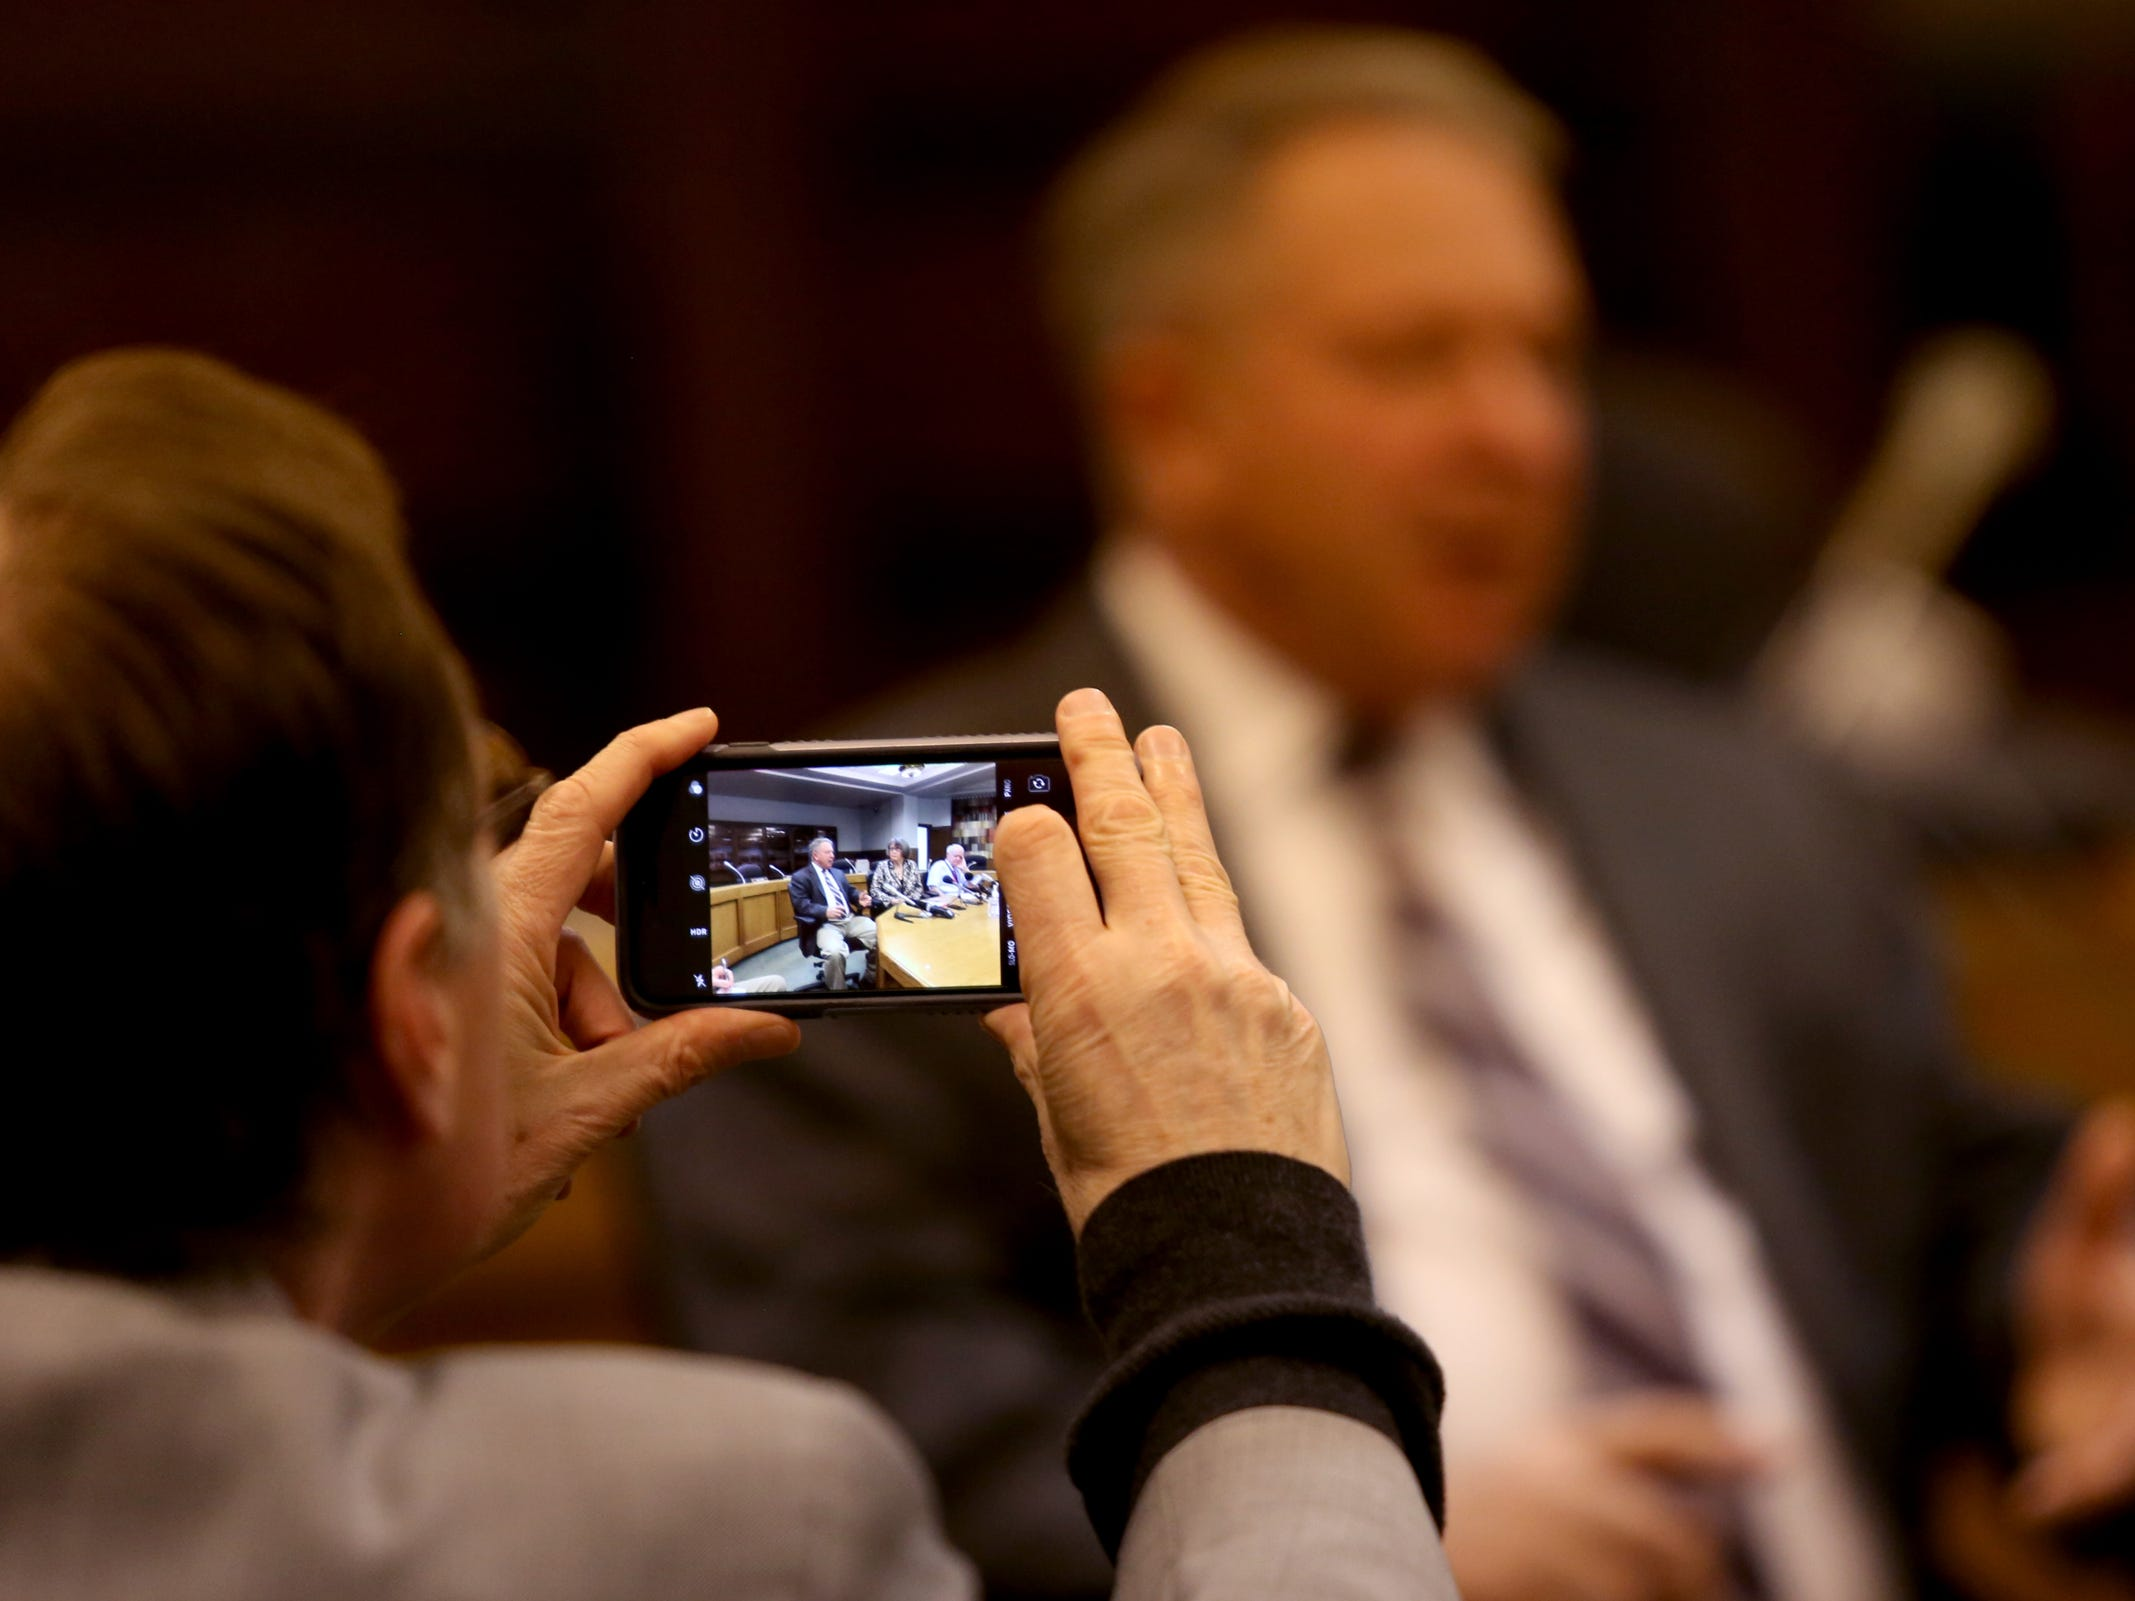 A reporter takes a photo during the AP Legislative Preview Day at the Oregon State Capitol in Salem on Friday, Jan. 18, 2019. The 2019 Oregon legislative session begins January 22.